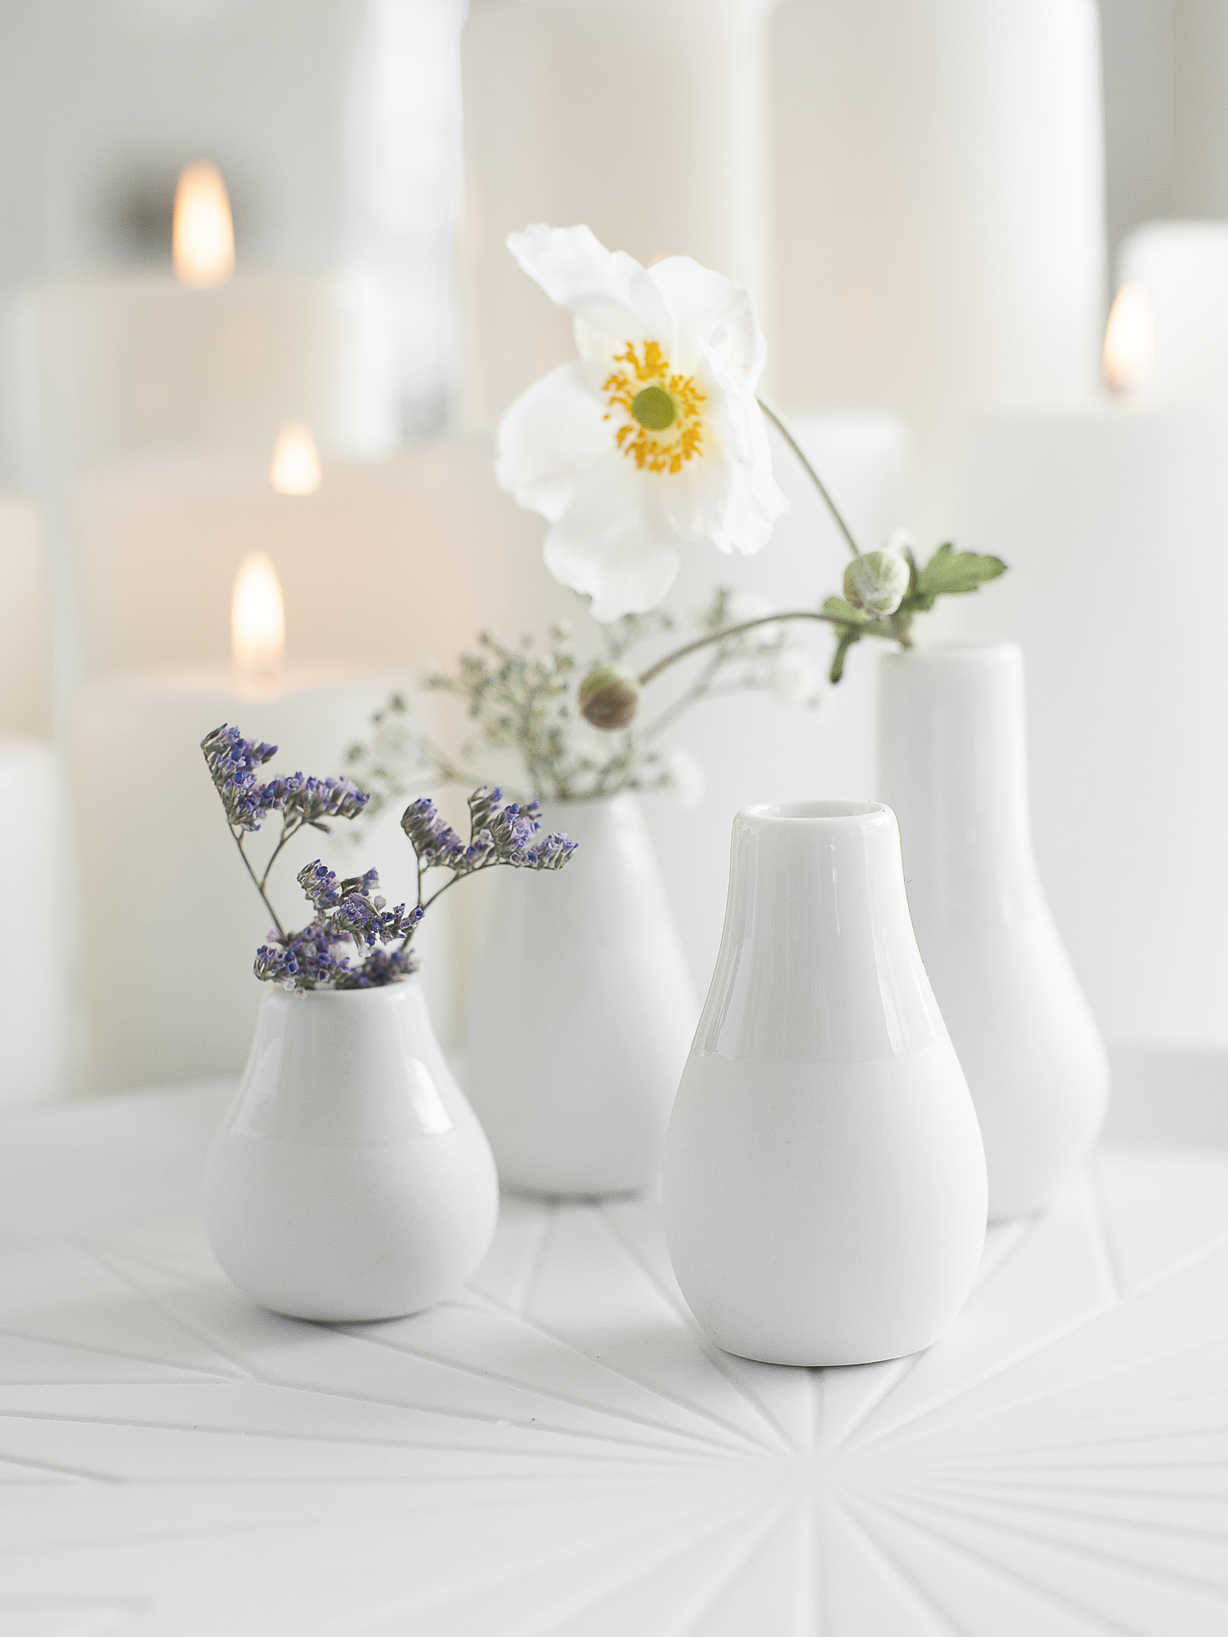 Nordic House Mini Porcelain Vase Set